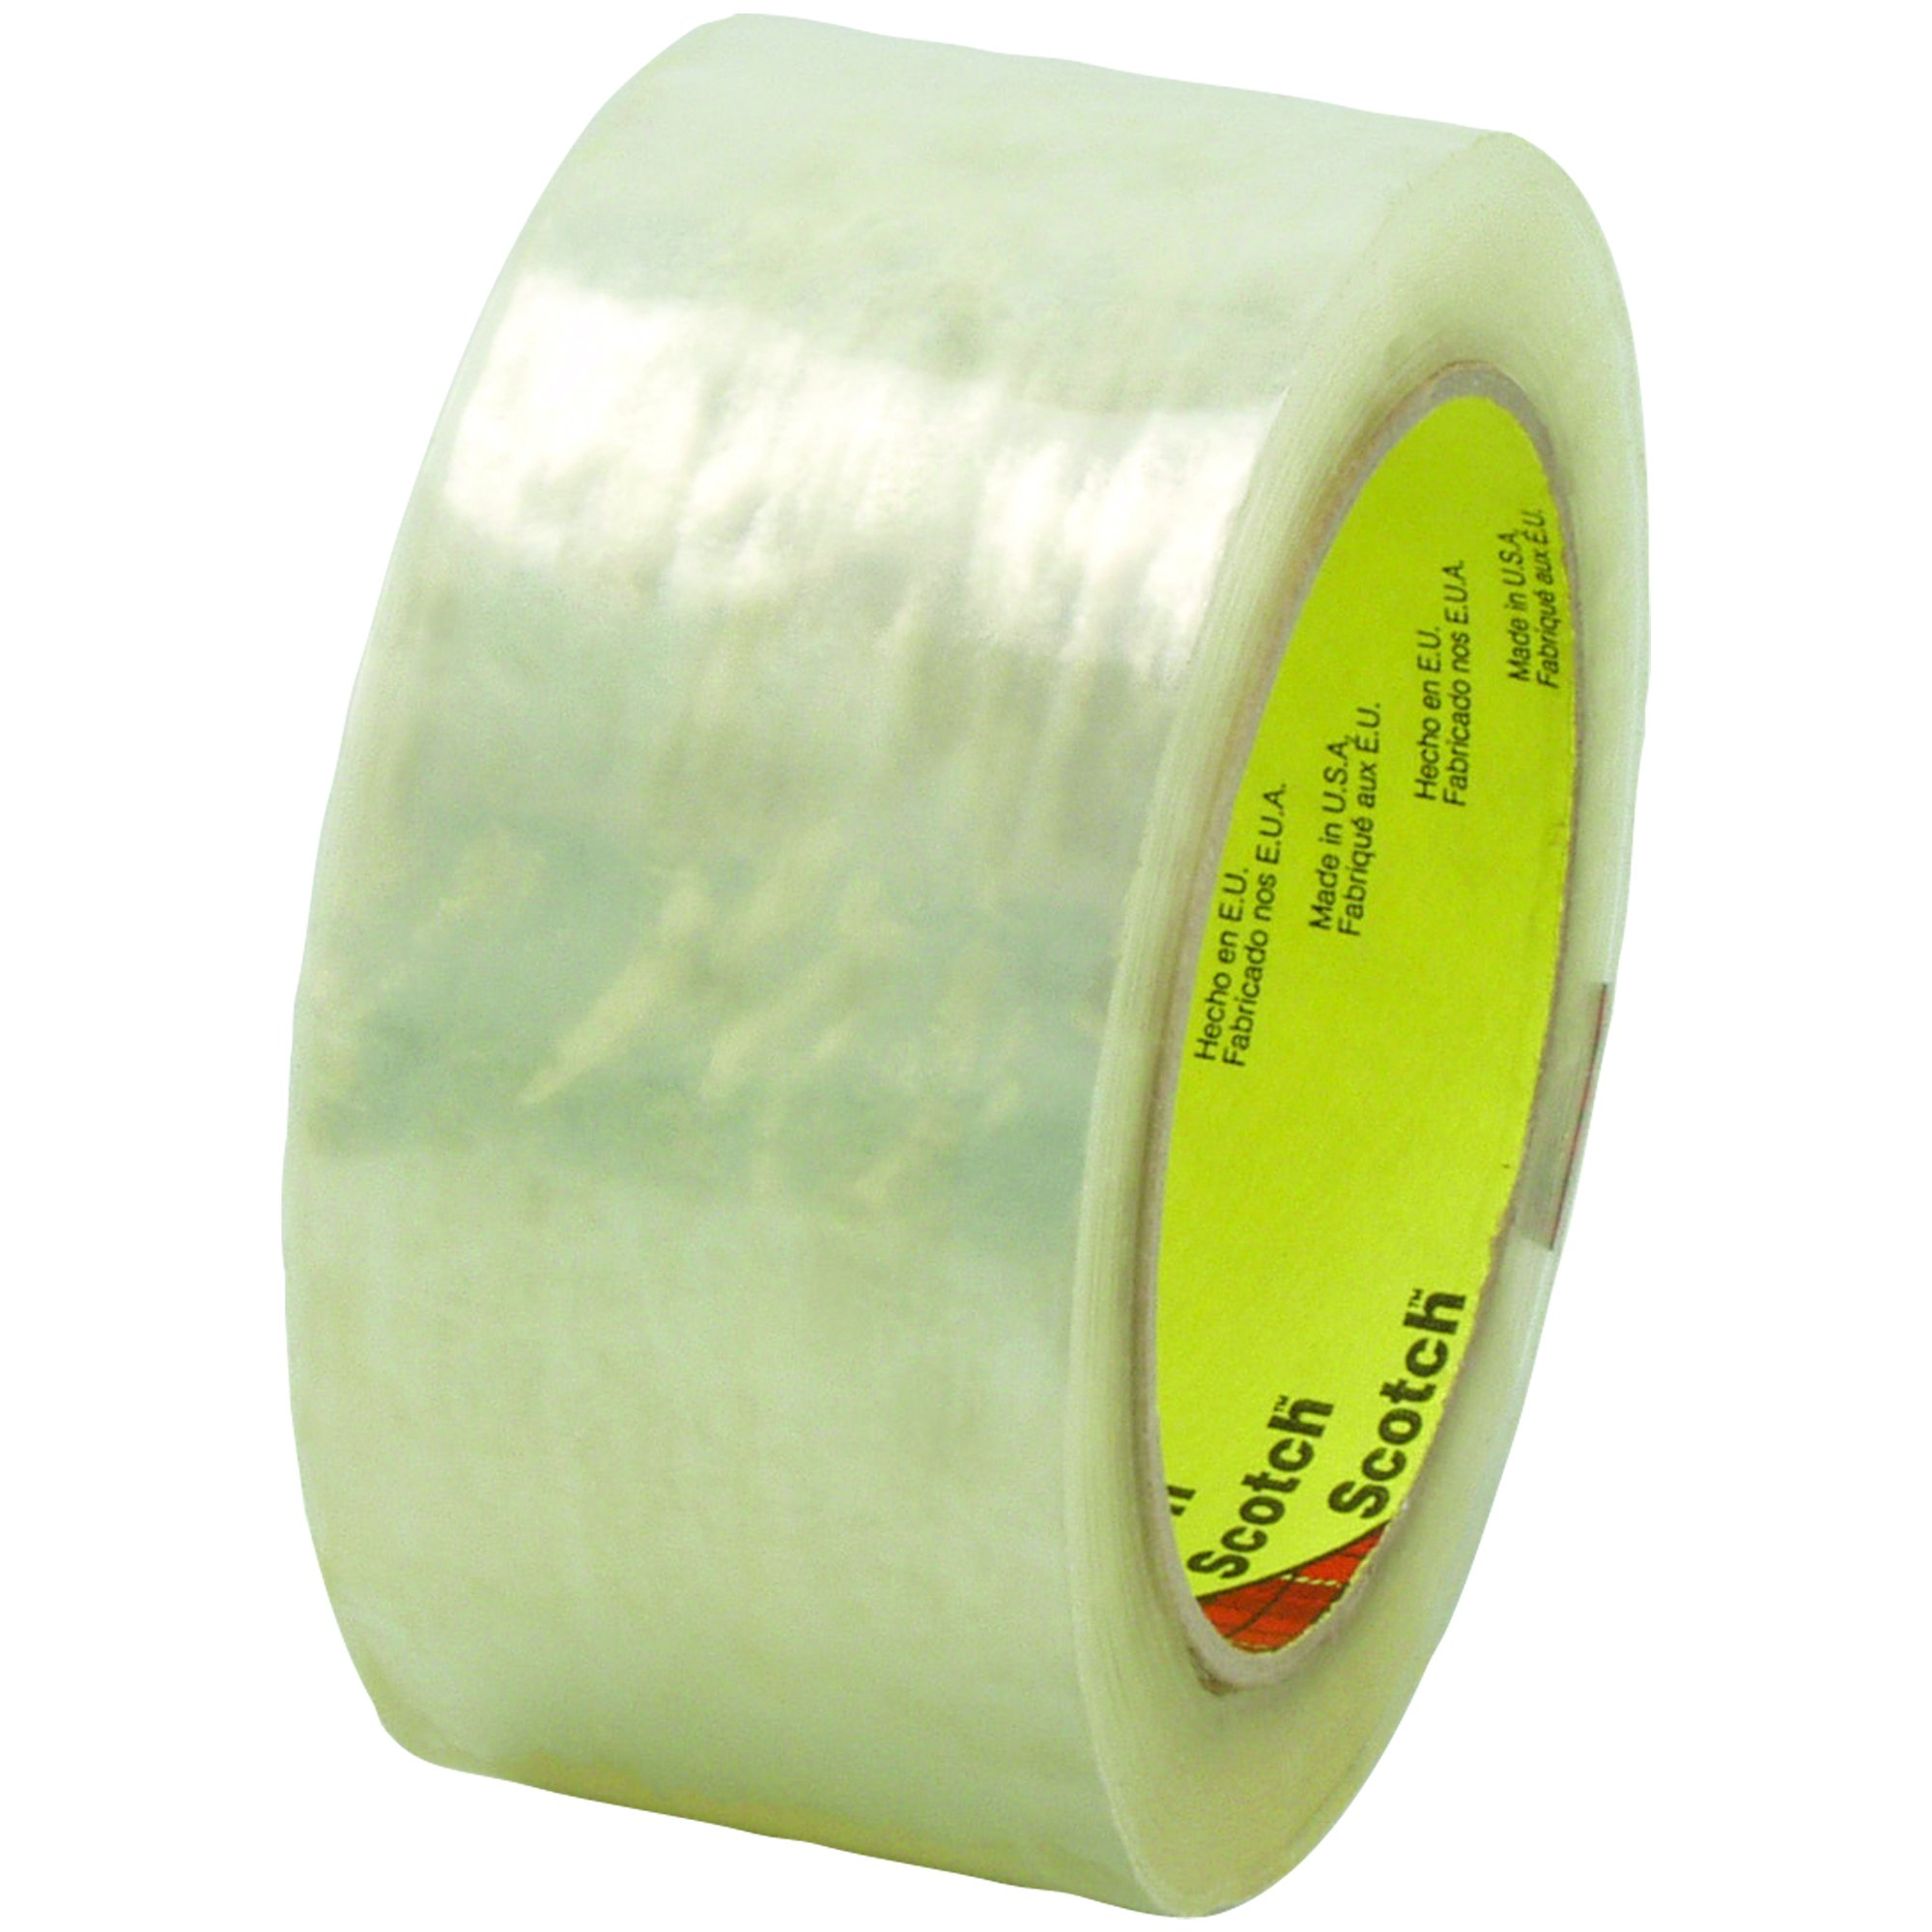 Ship Now Supply SNT9013723 3M 3723 Cold Temp. Carton Sealing Tape, 3.0 Mil, 2'' x 55 yd., Clear (Pack of 36)